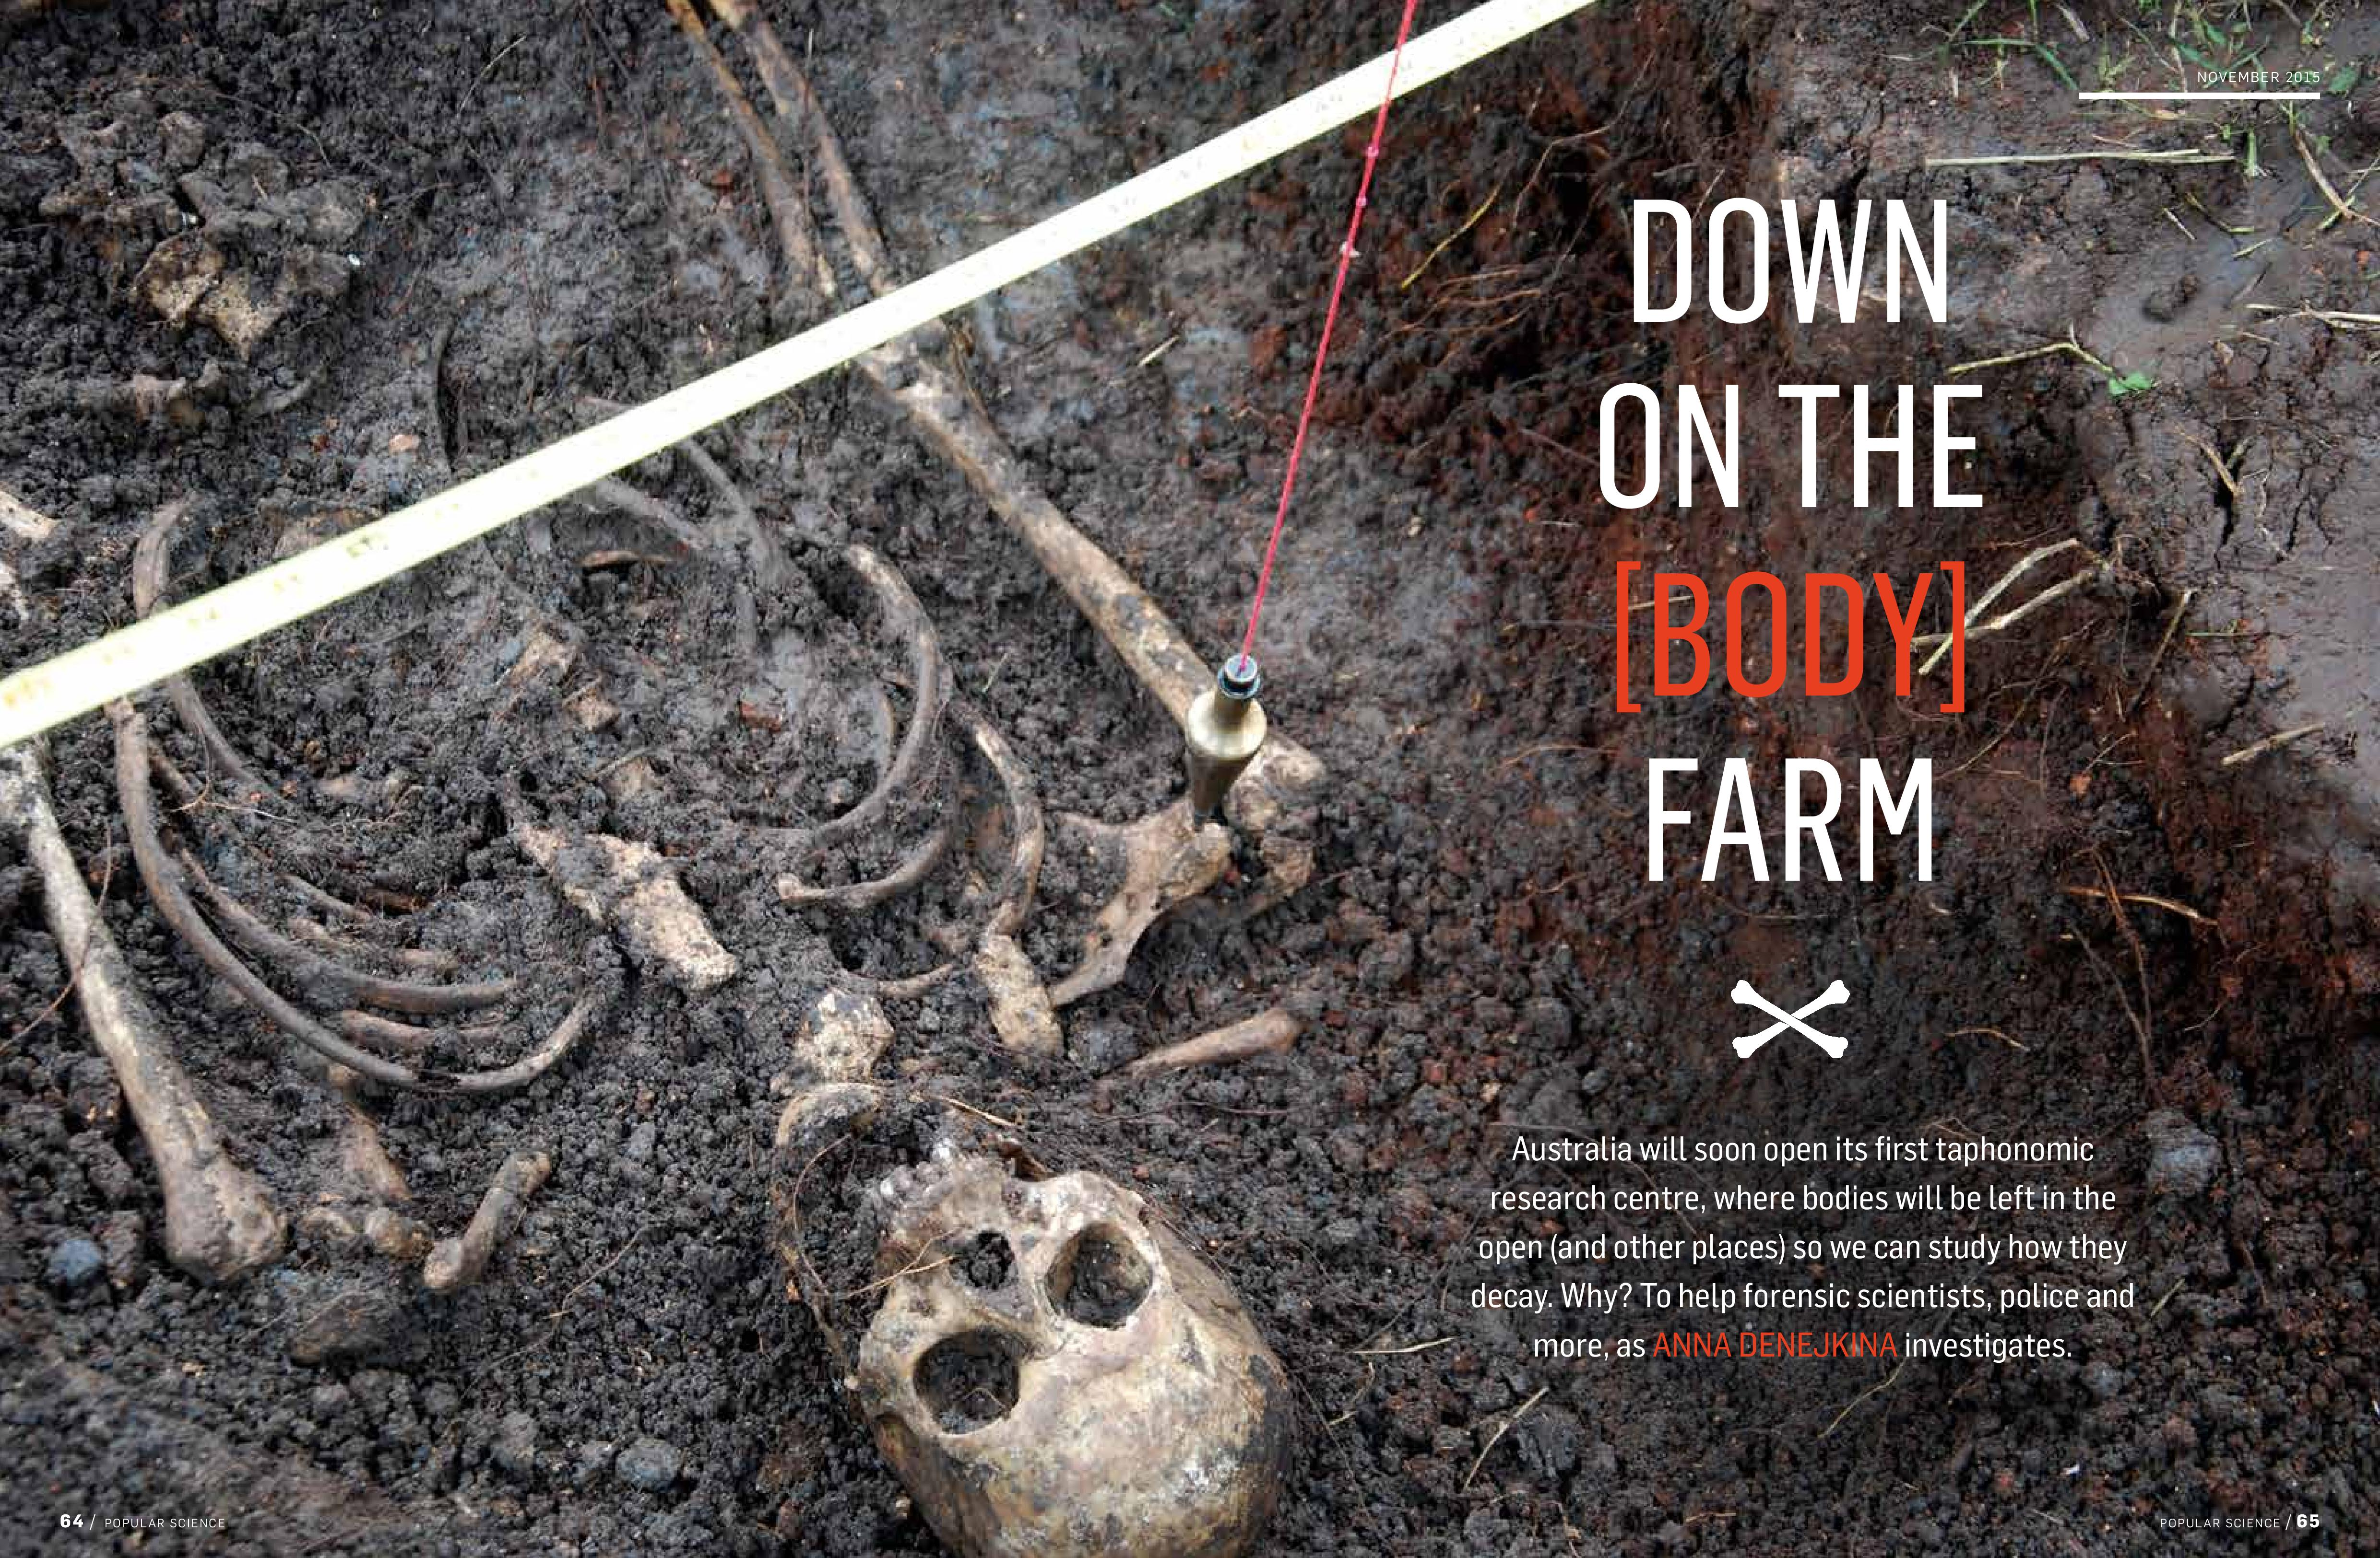 body farm Listen to the body farm by patricia cornwell rent unlimited audio books on cd over 46,000 titles get a free 15 day trial at simply audiobooks.